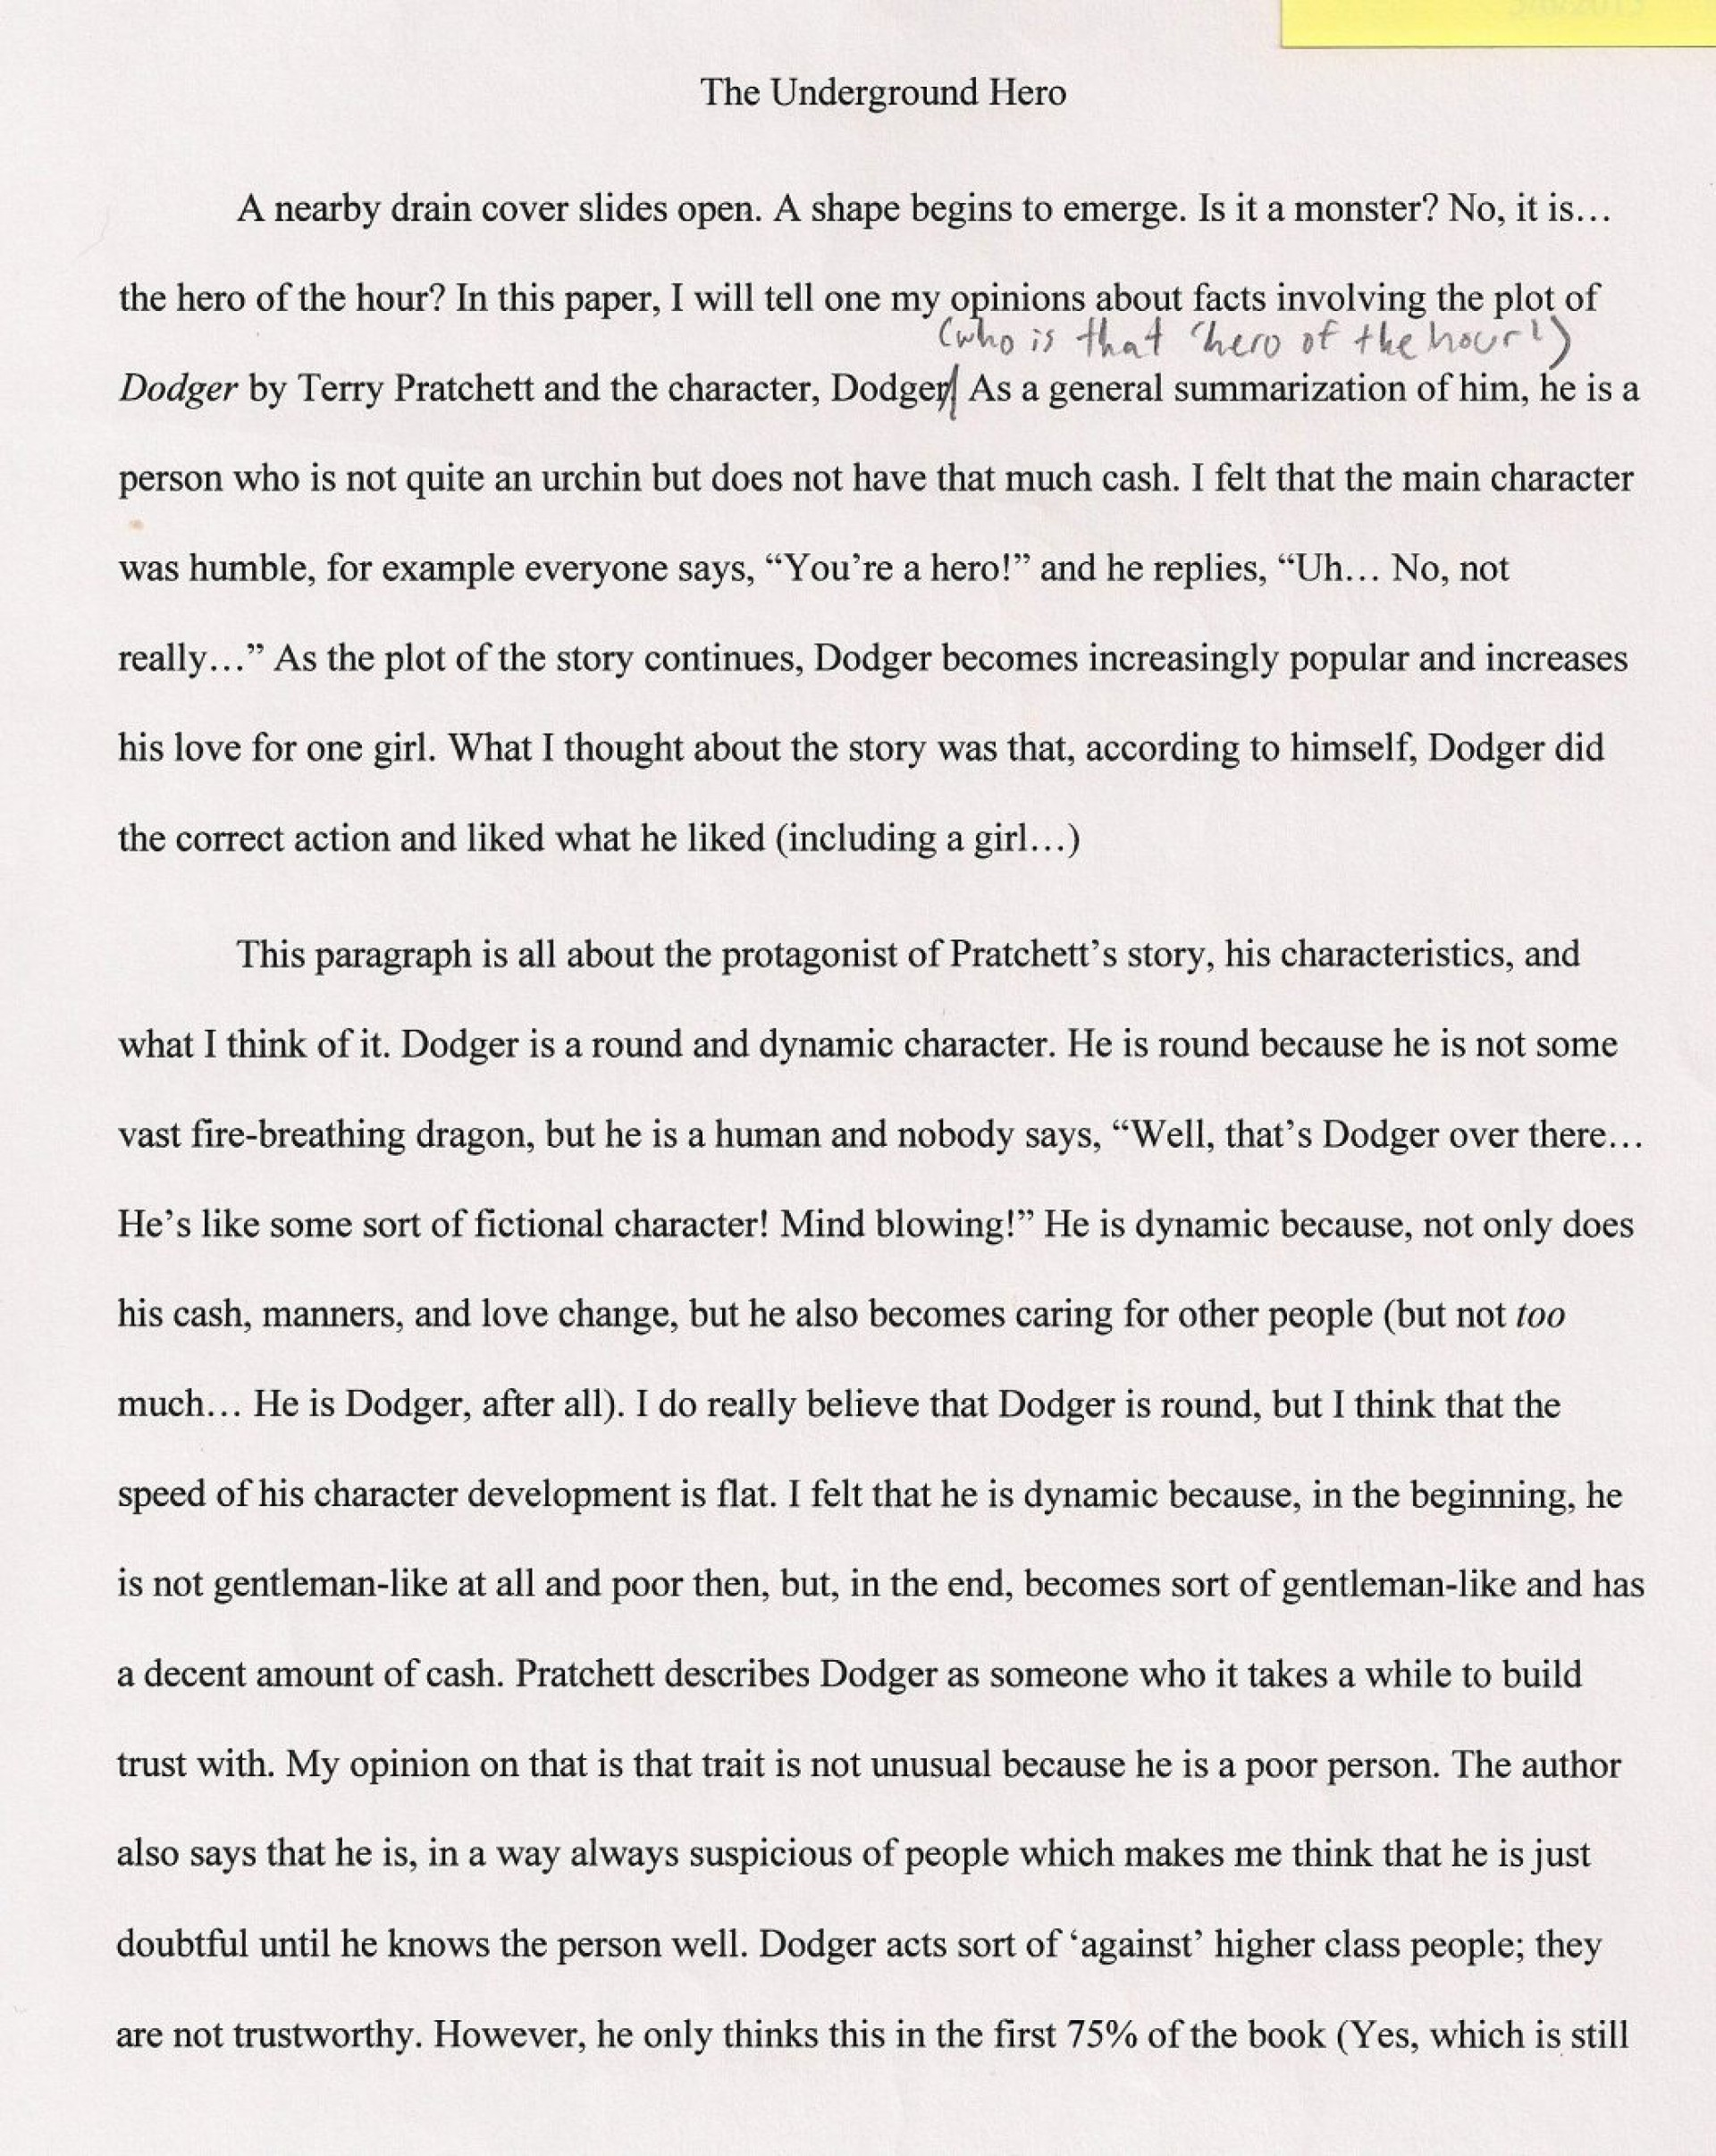 010 Satire Essay Global Warming On Heroes My Hero Essays How To Write An Argumentative The Undergro Persuasive About Study Mode Good Paper 1048x1317 Beautiful Outline Funny Topics 1920